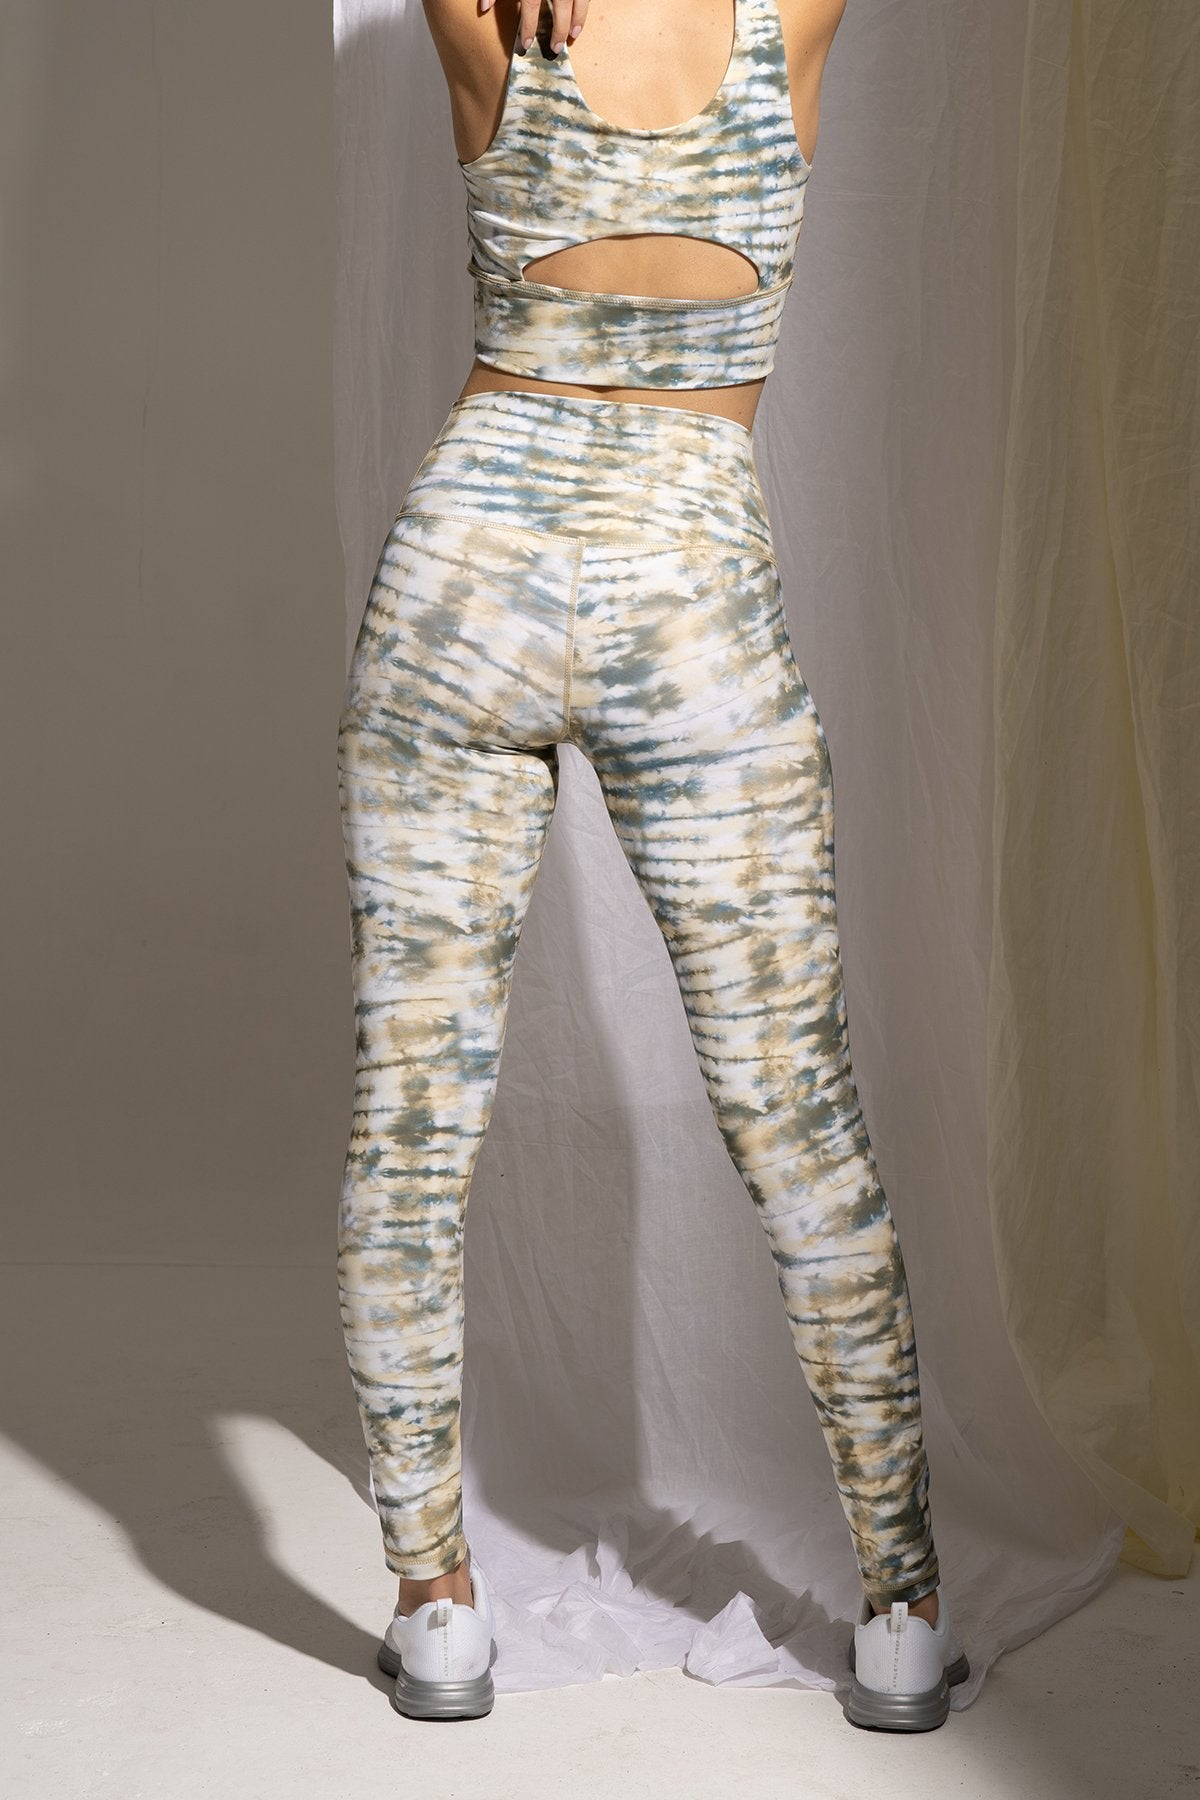 Printed Signature Tight Dye House, TIGHT - shopdyi.com